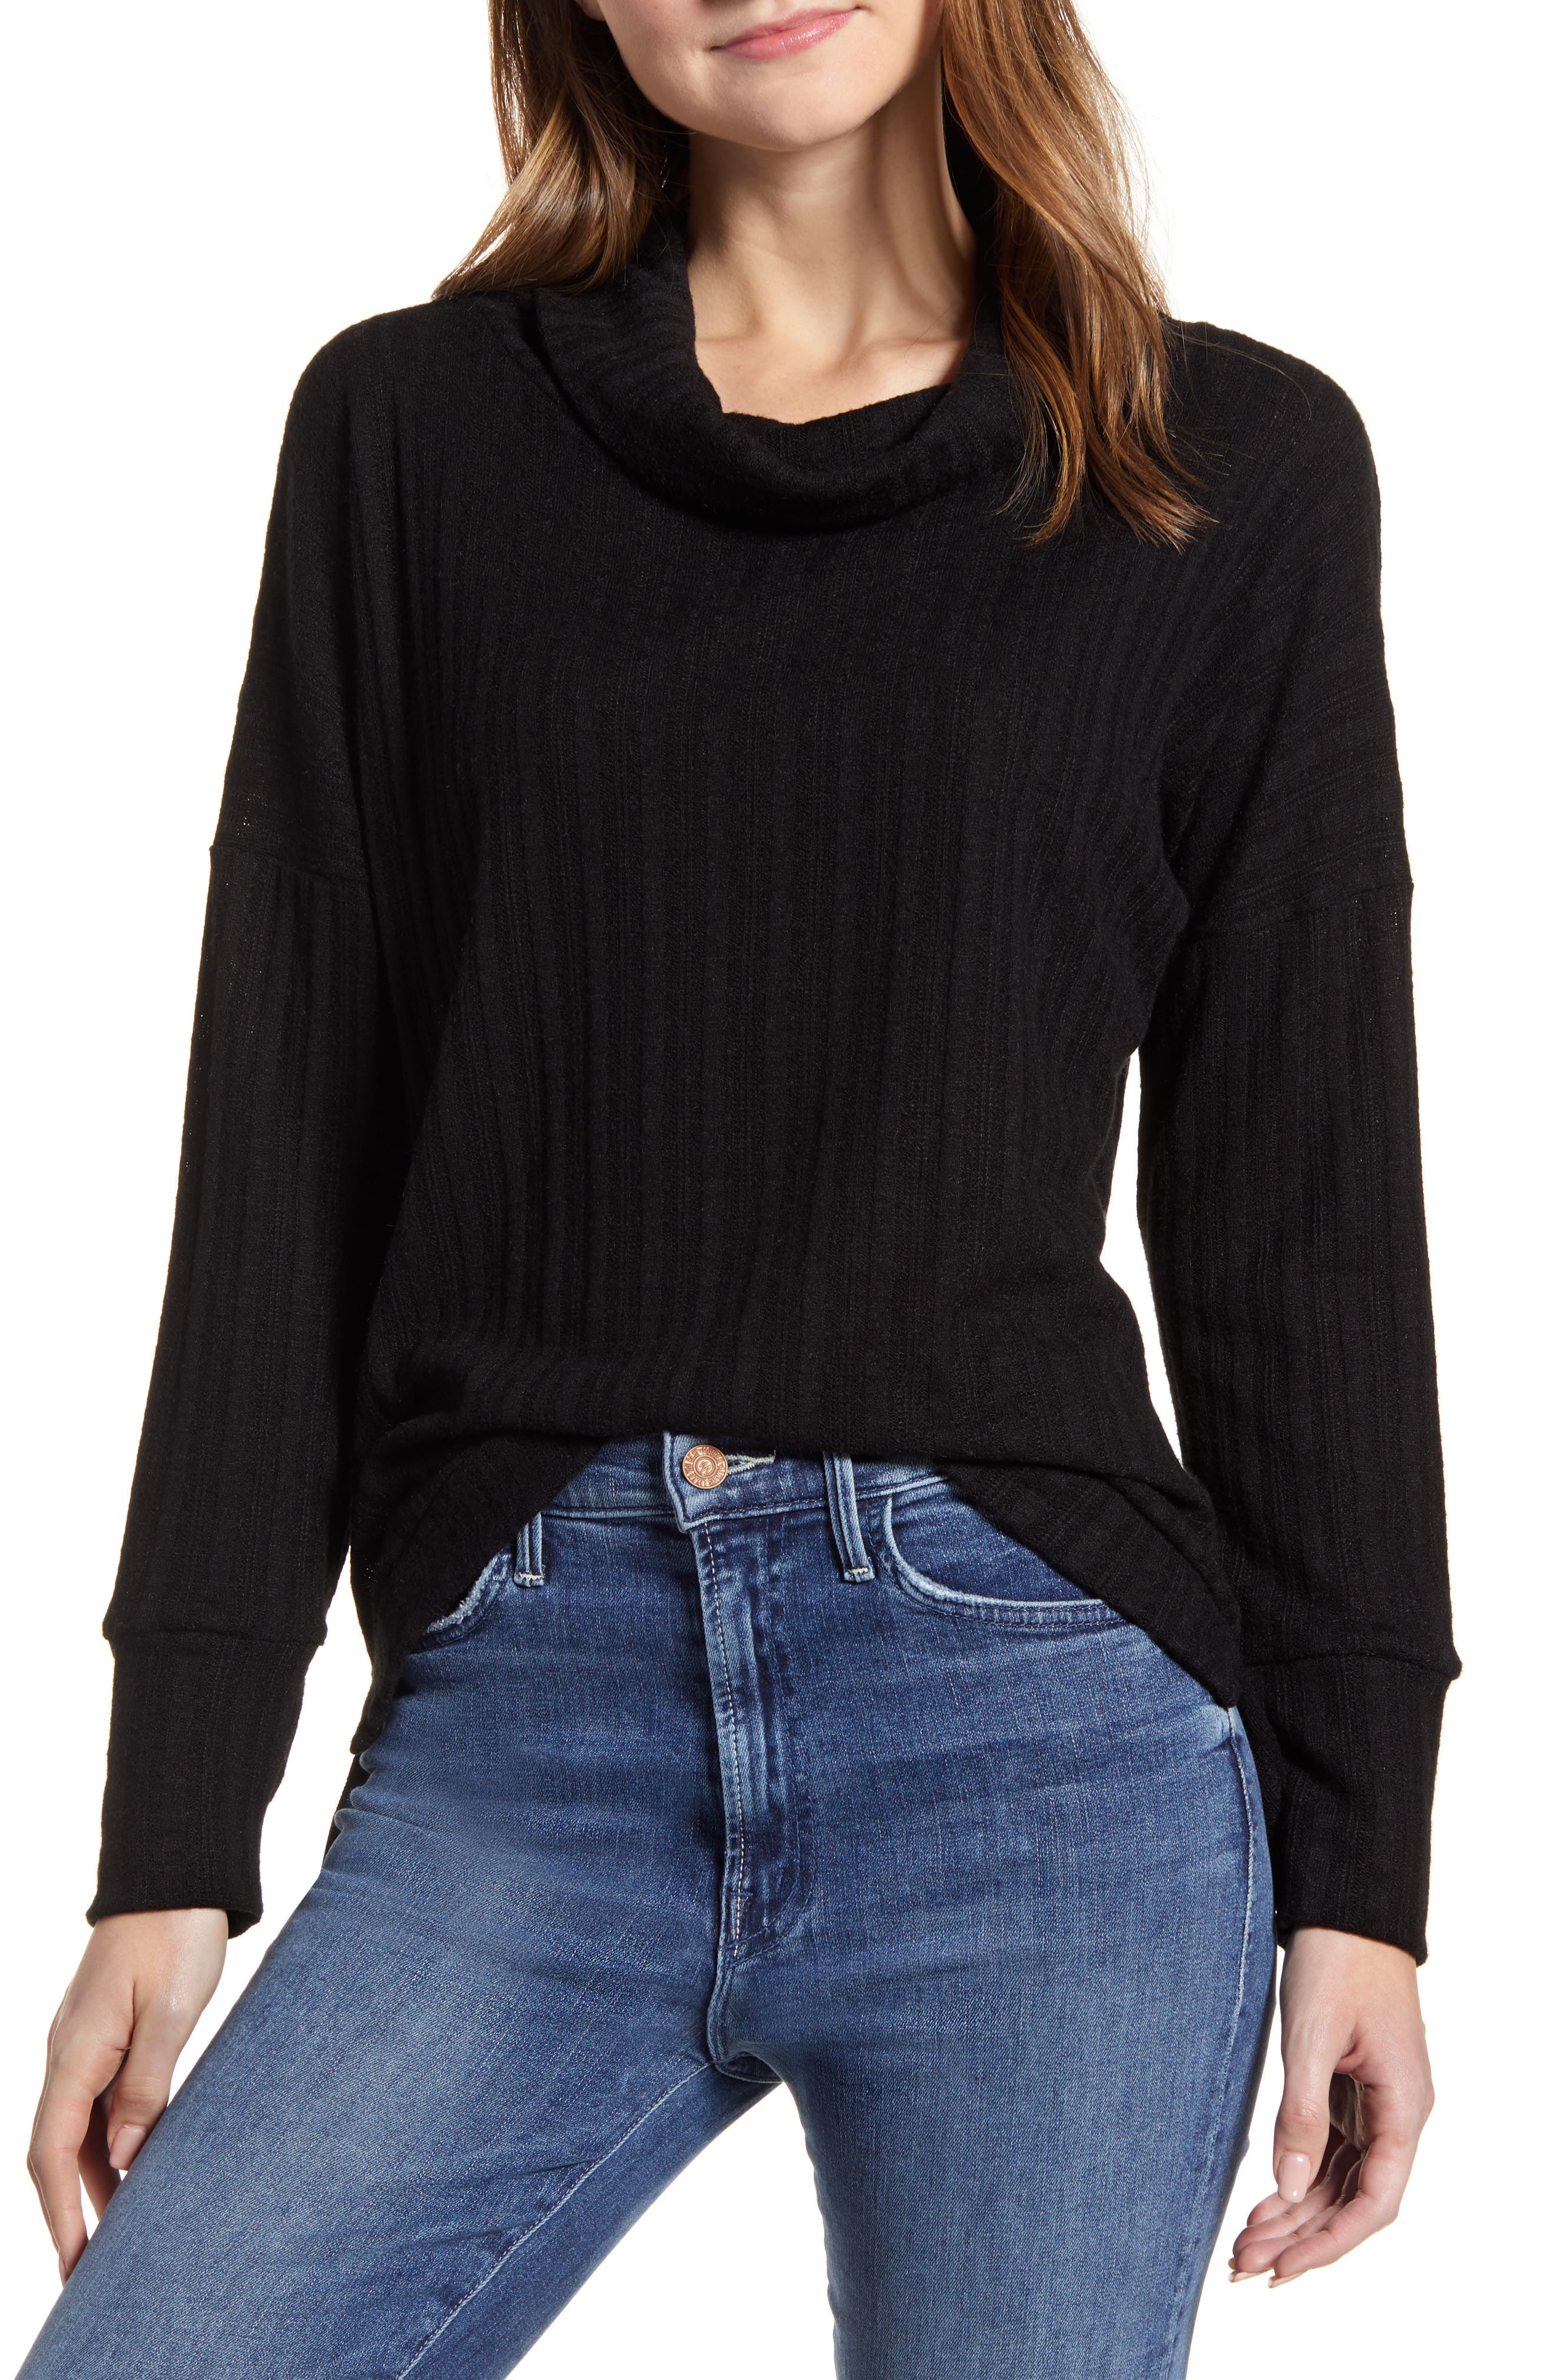 A cowl-neck top keeps things cozy with thumbhole cuffs and still makes a pretty point thanks to pointelle stitching striped throughout. Style Name: Loveapella Pointelle Ribbed Cowl Neck Top. Style Number: 5982232. Available in stores.